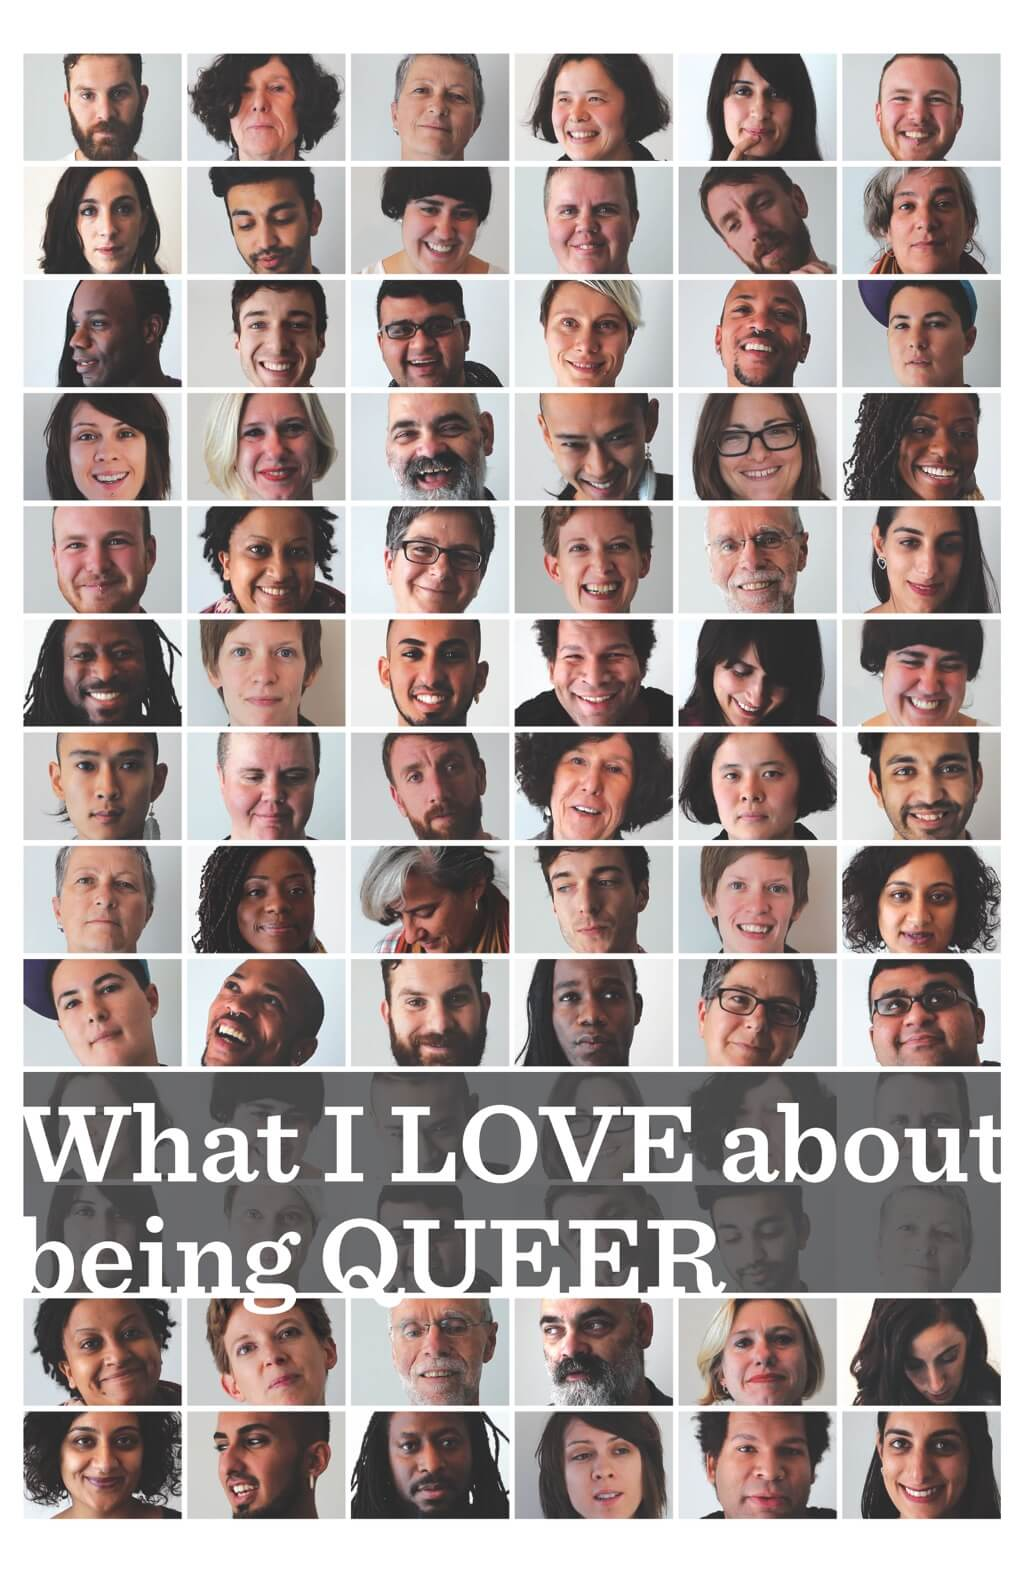 A photo mosaic of smiling faces, crossed by a grey banner with bold white text: 'What I LOVE about being QUEER.'